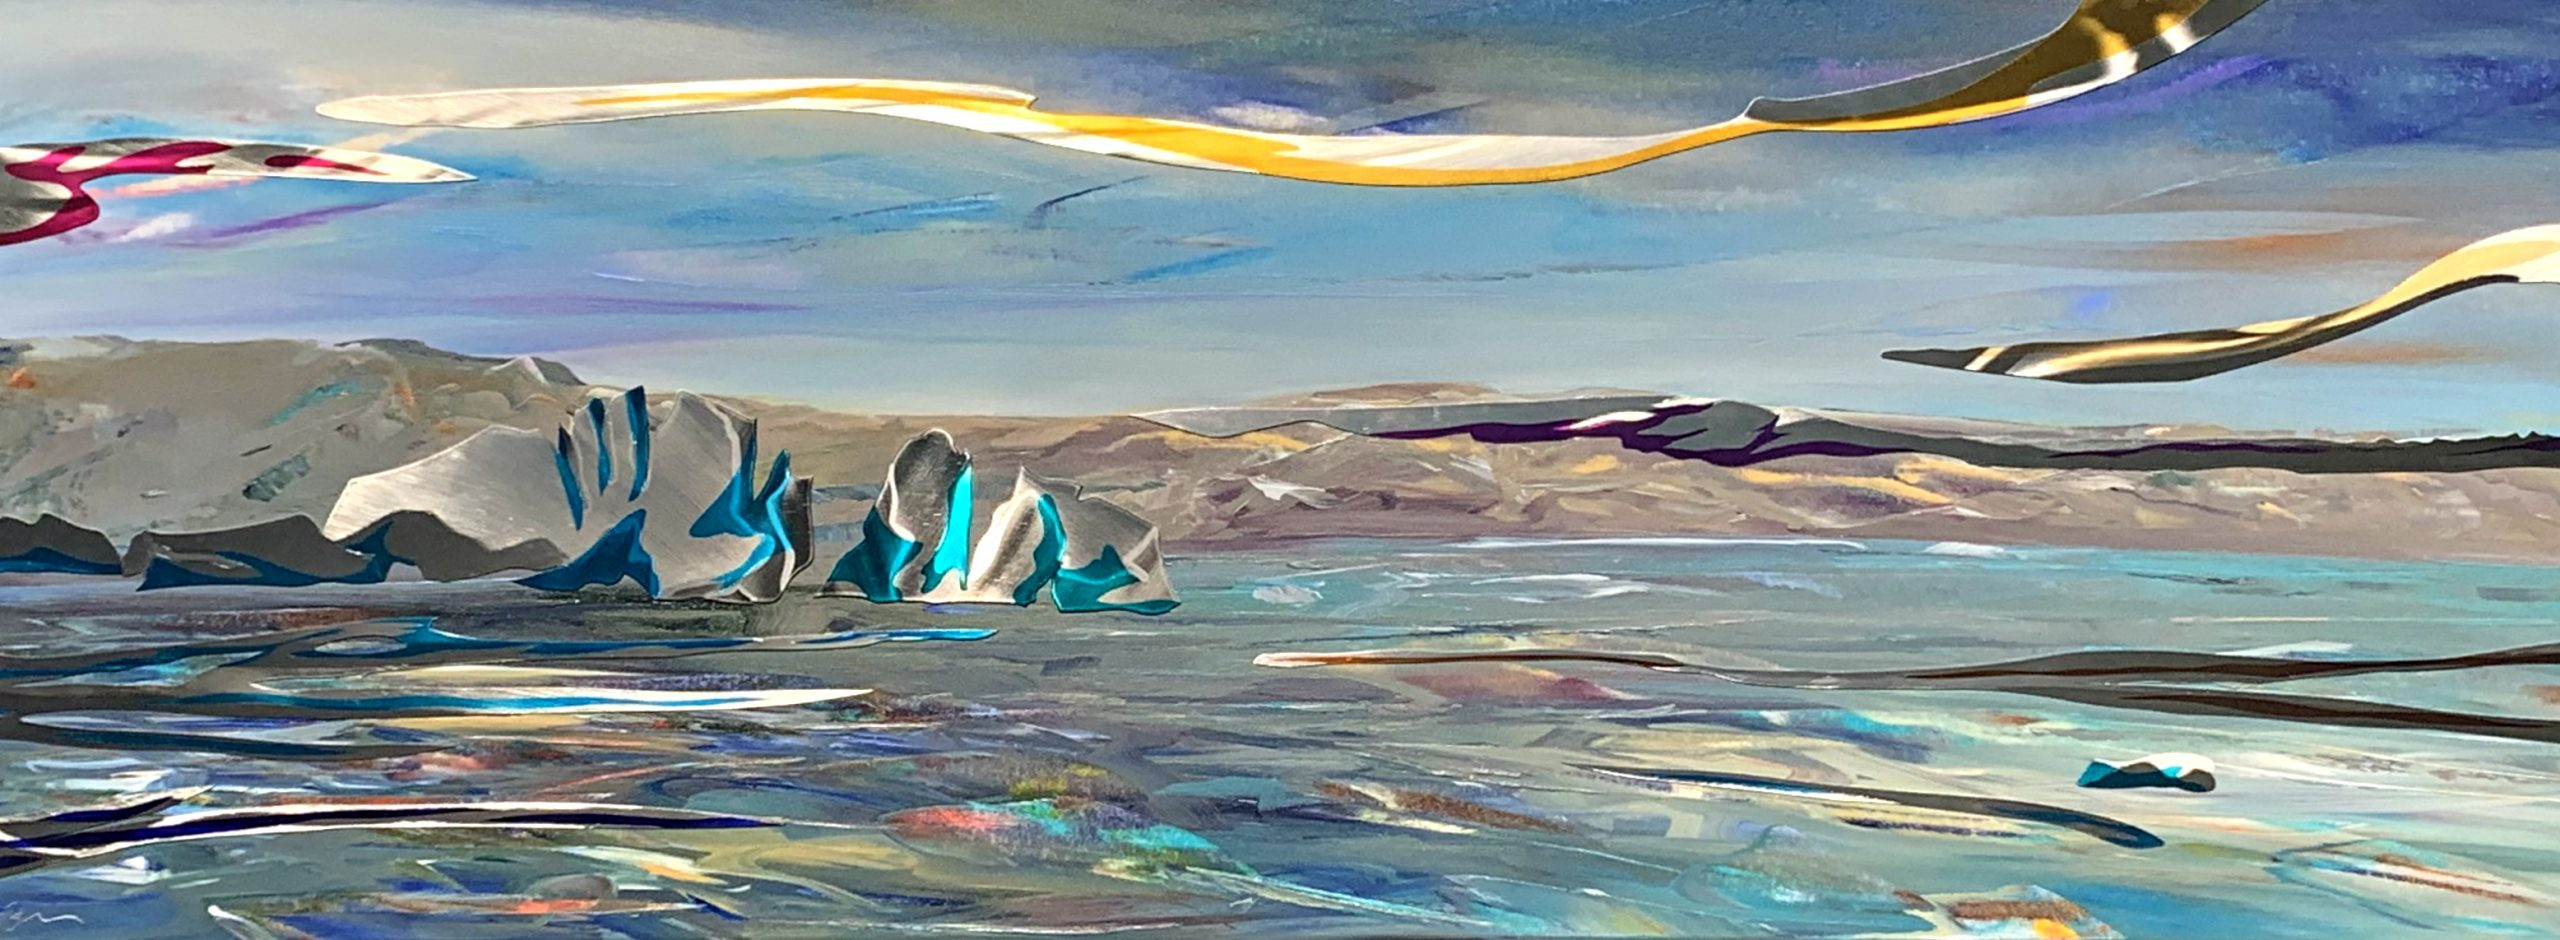 Glacier Bay Solitude, mixed media landscape painting by Joel Masewich | Effusion Art Gallery + Cast Glass Studio, Invermere BC